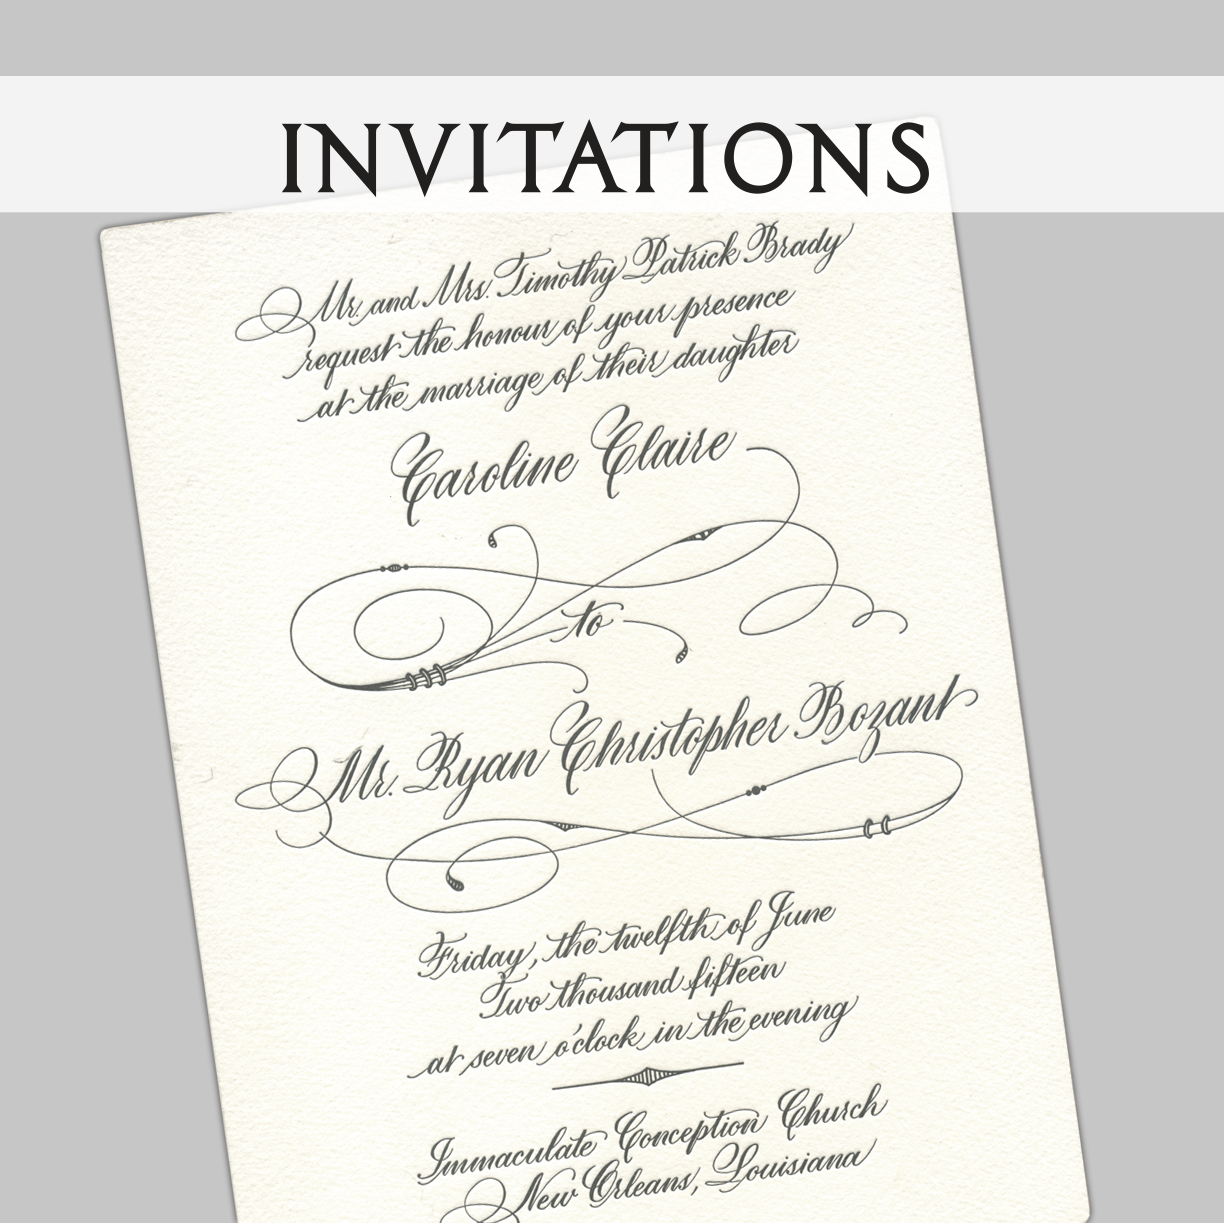 wedding-landing-page-inviataions-best-custom-wedding-invitations-letter-perfect-santa-barbara.png